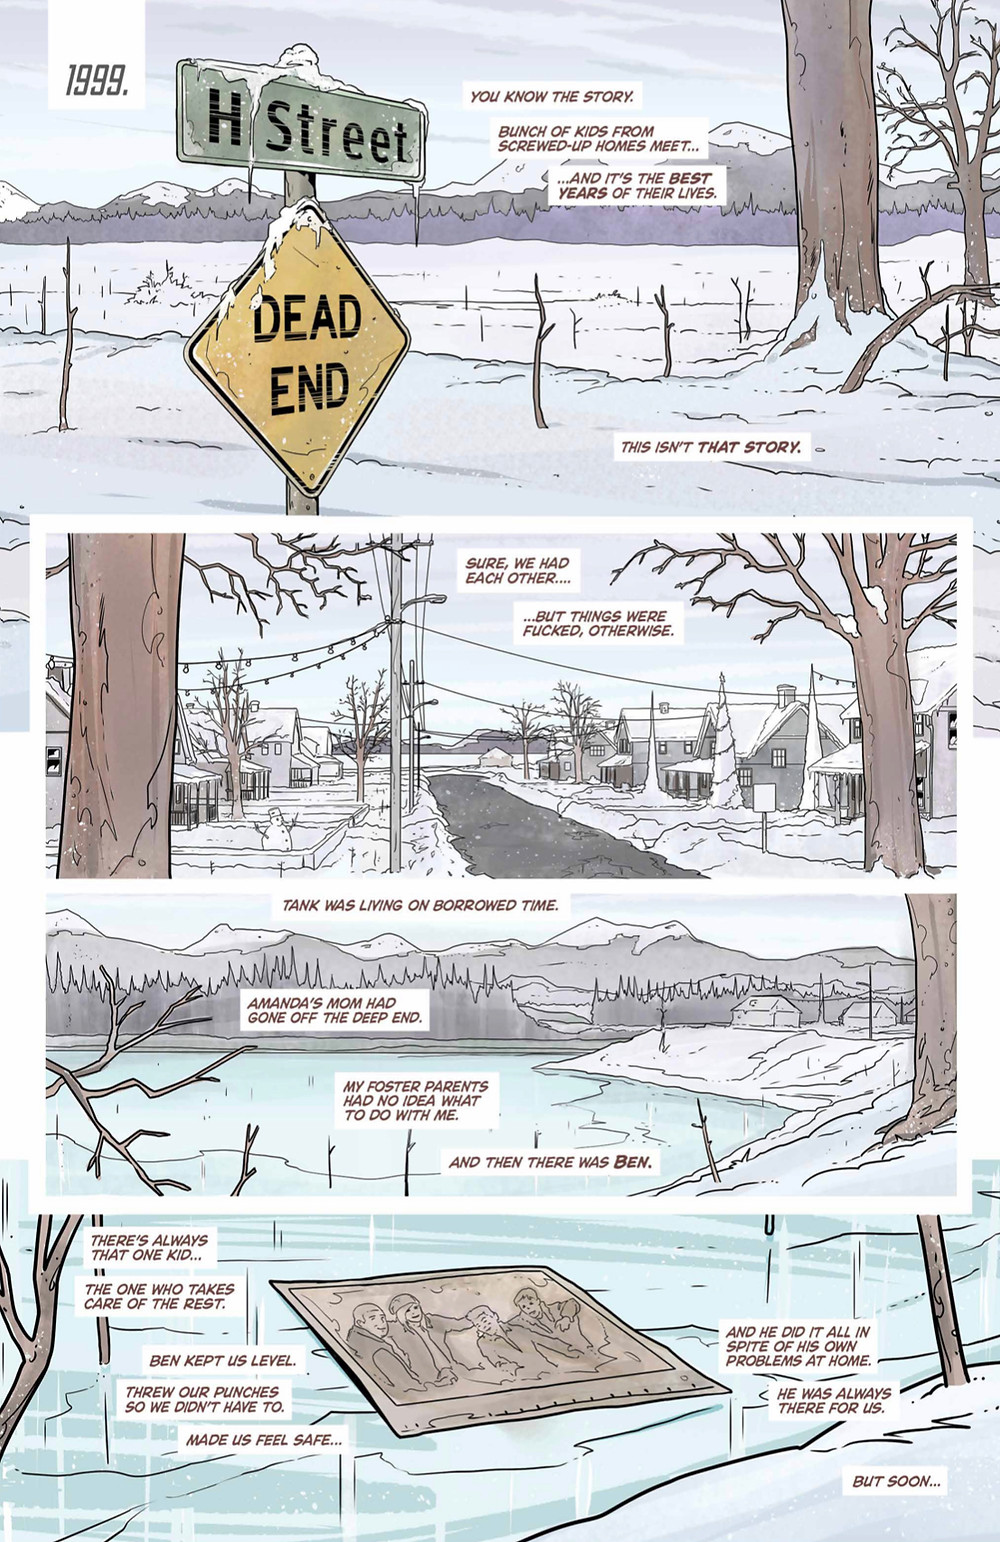 Something Real, issue #1, page 3, Elixir Comics, Turnage/Miller